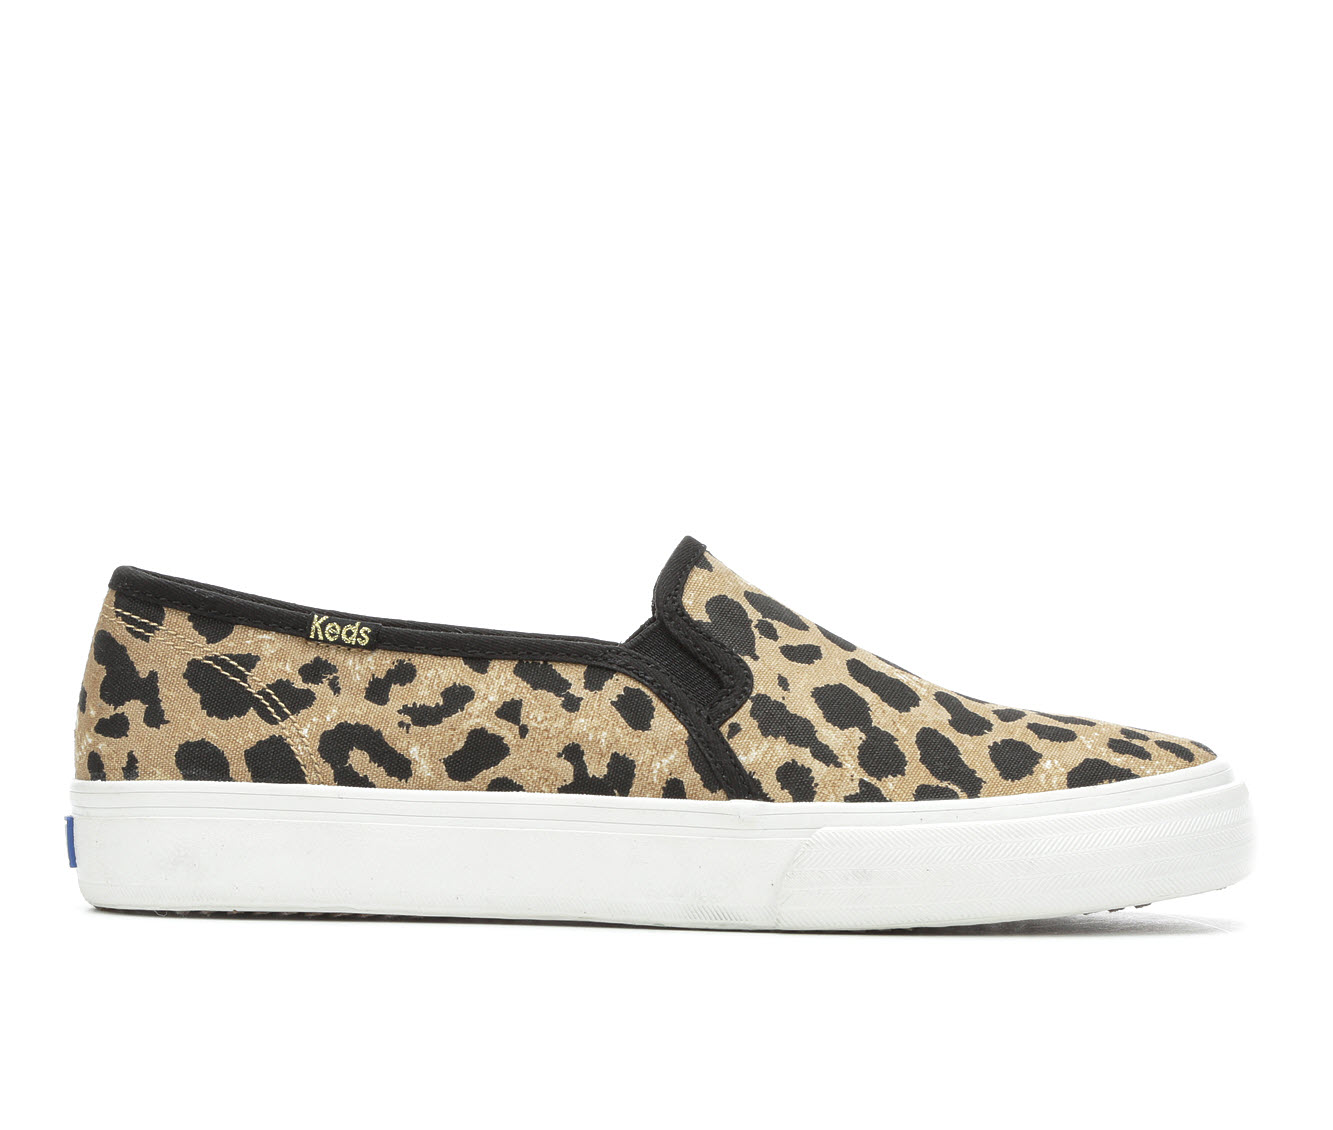 Keds Double Decker Leopard Women's Shoe (Beige Canvas)